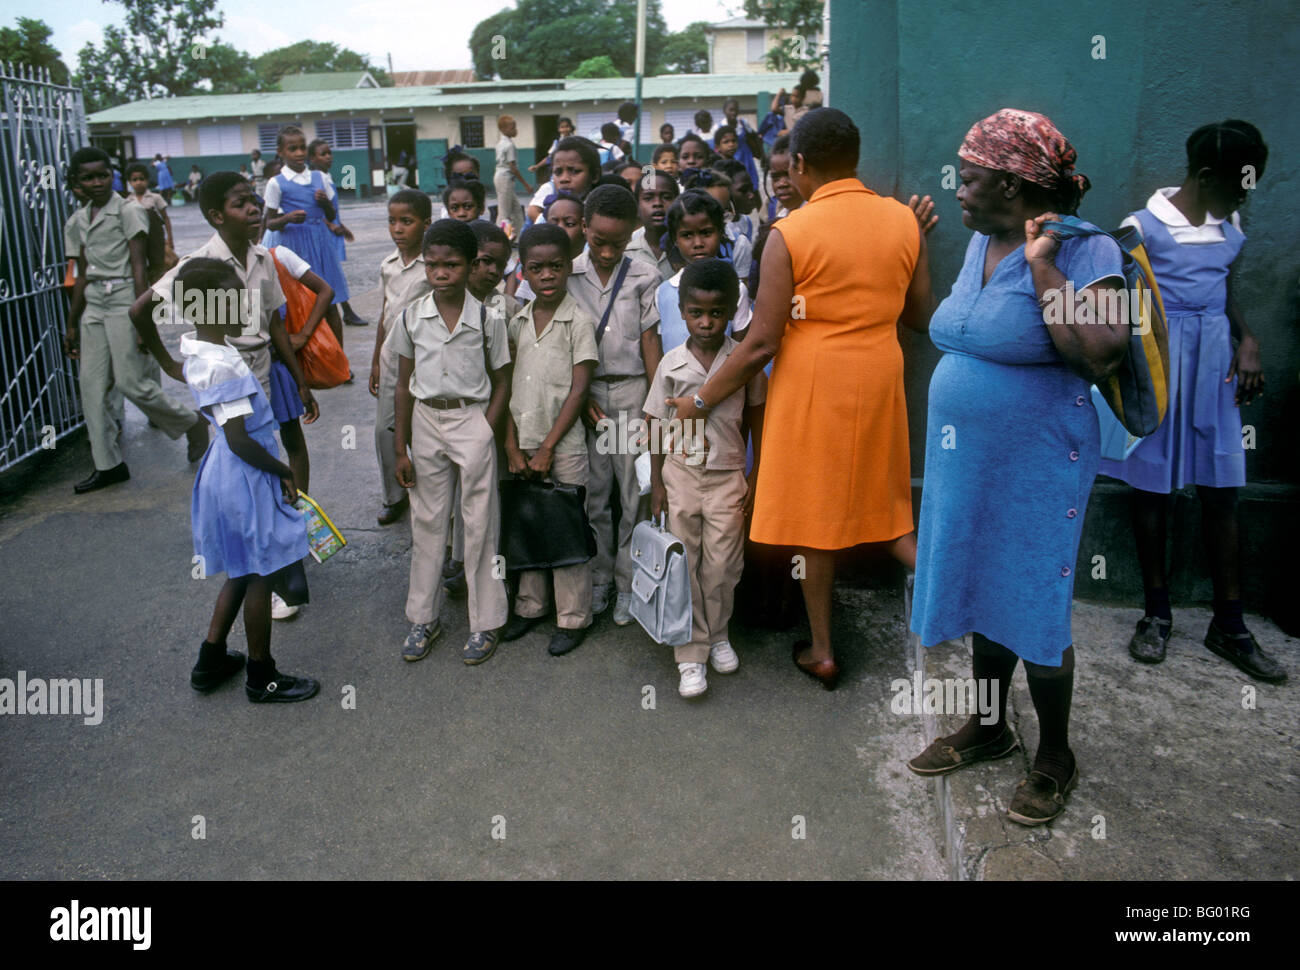 Jamaican girls, Jamaican boys, schoolgirls, schoolboys, schoolchildren, students, elementary school, Spanish Town, - Stock Image